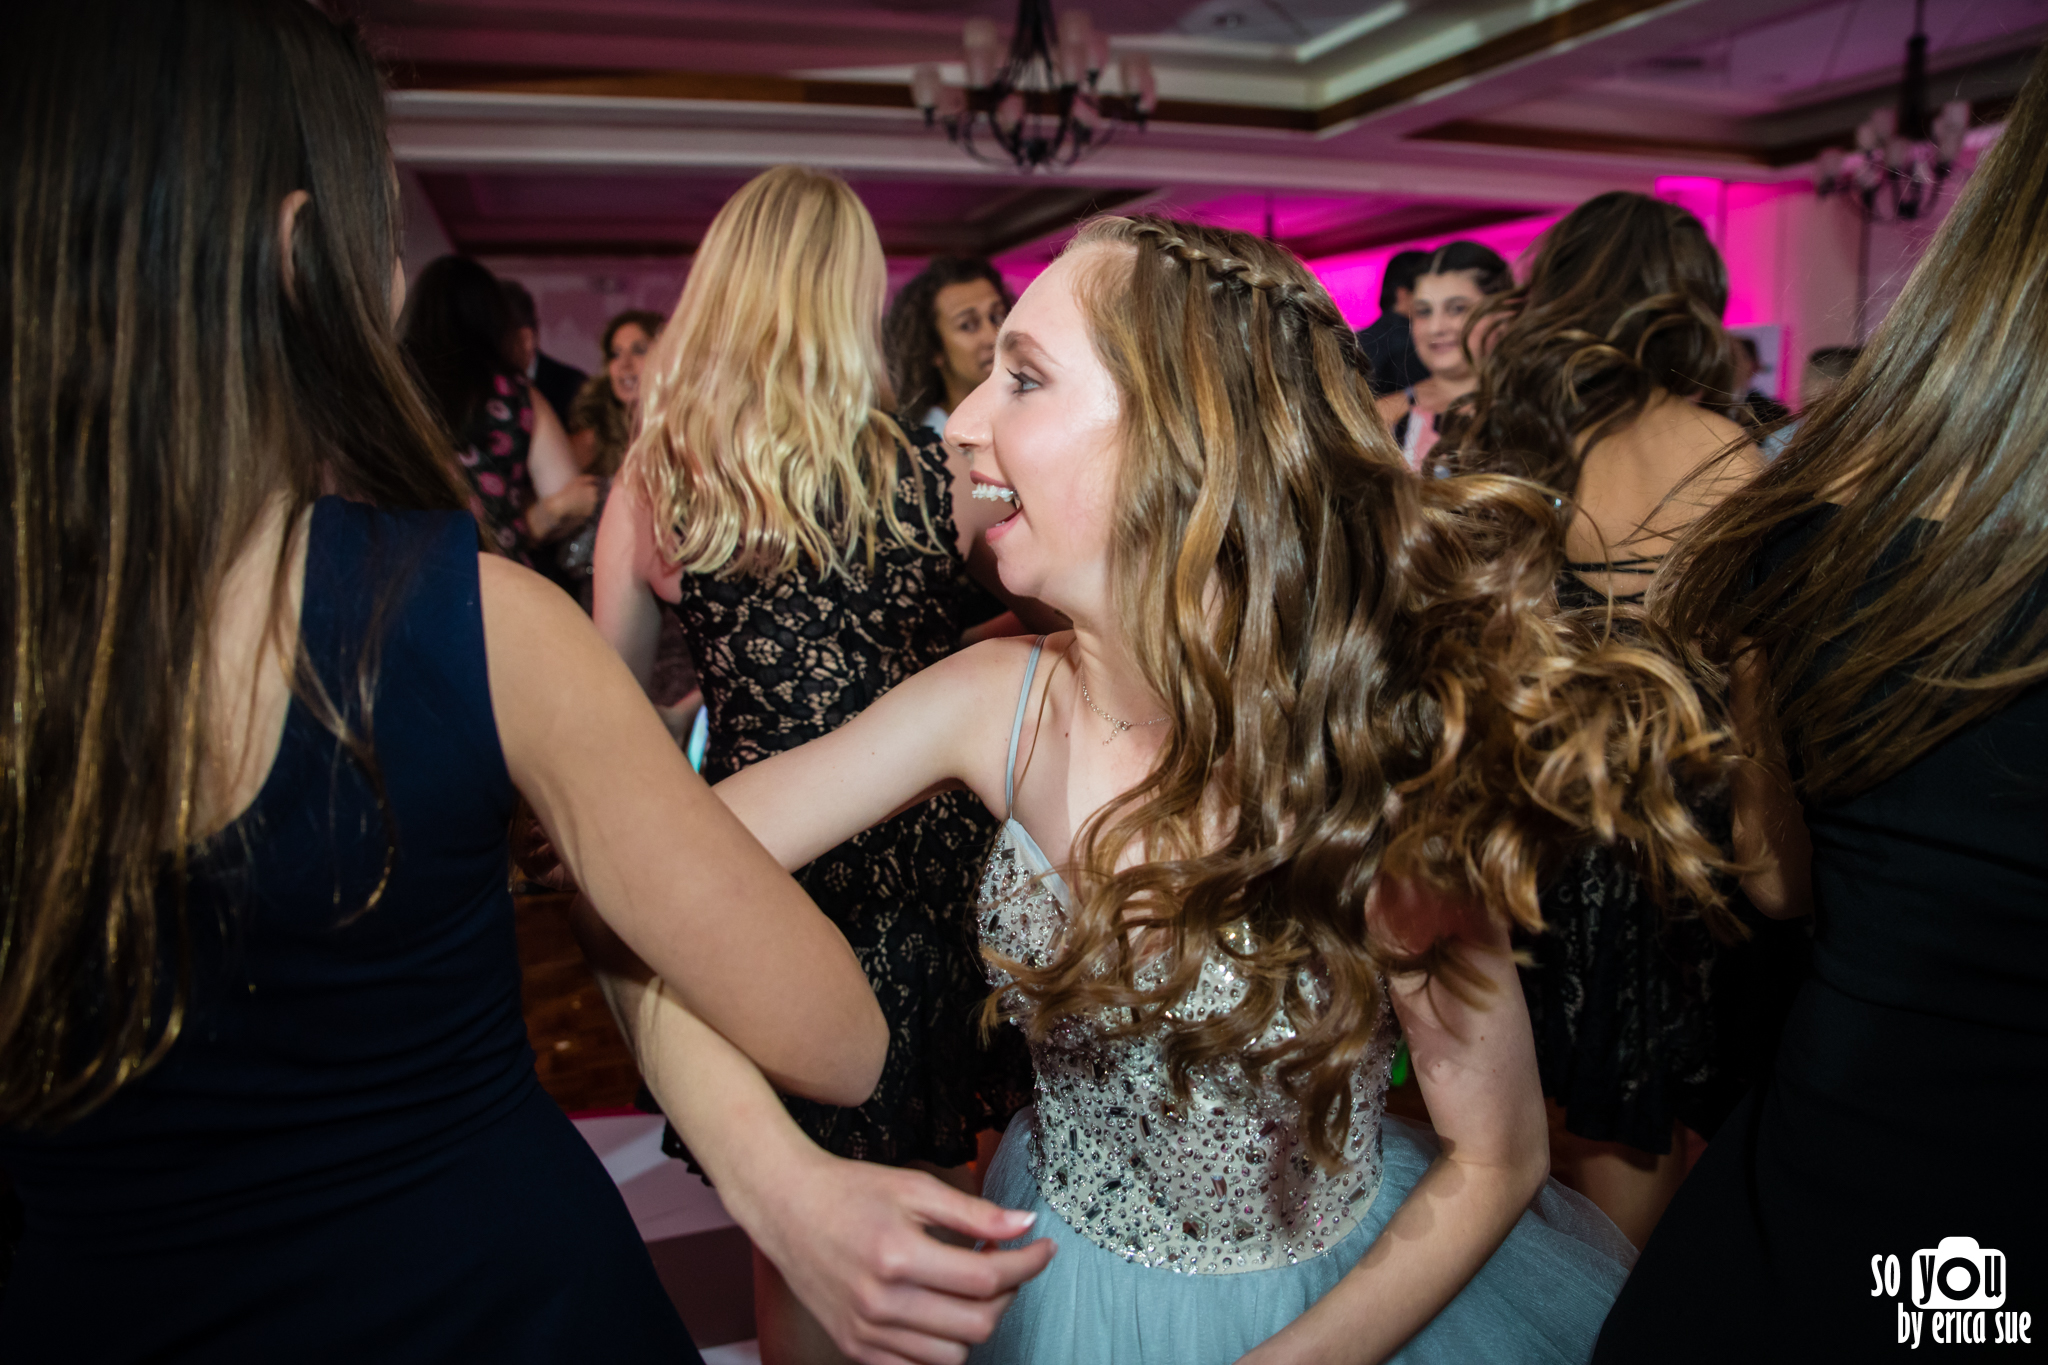 parkland-fl-mitzvah-photography-so-you-by-erica-sue-1261.jpg